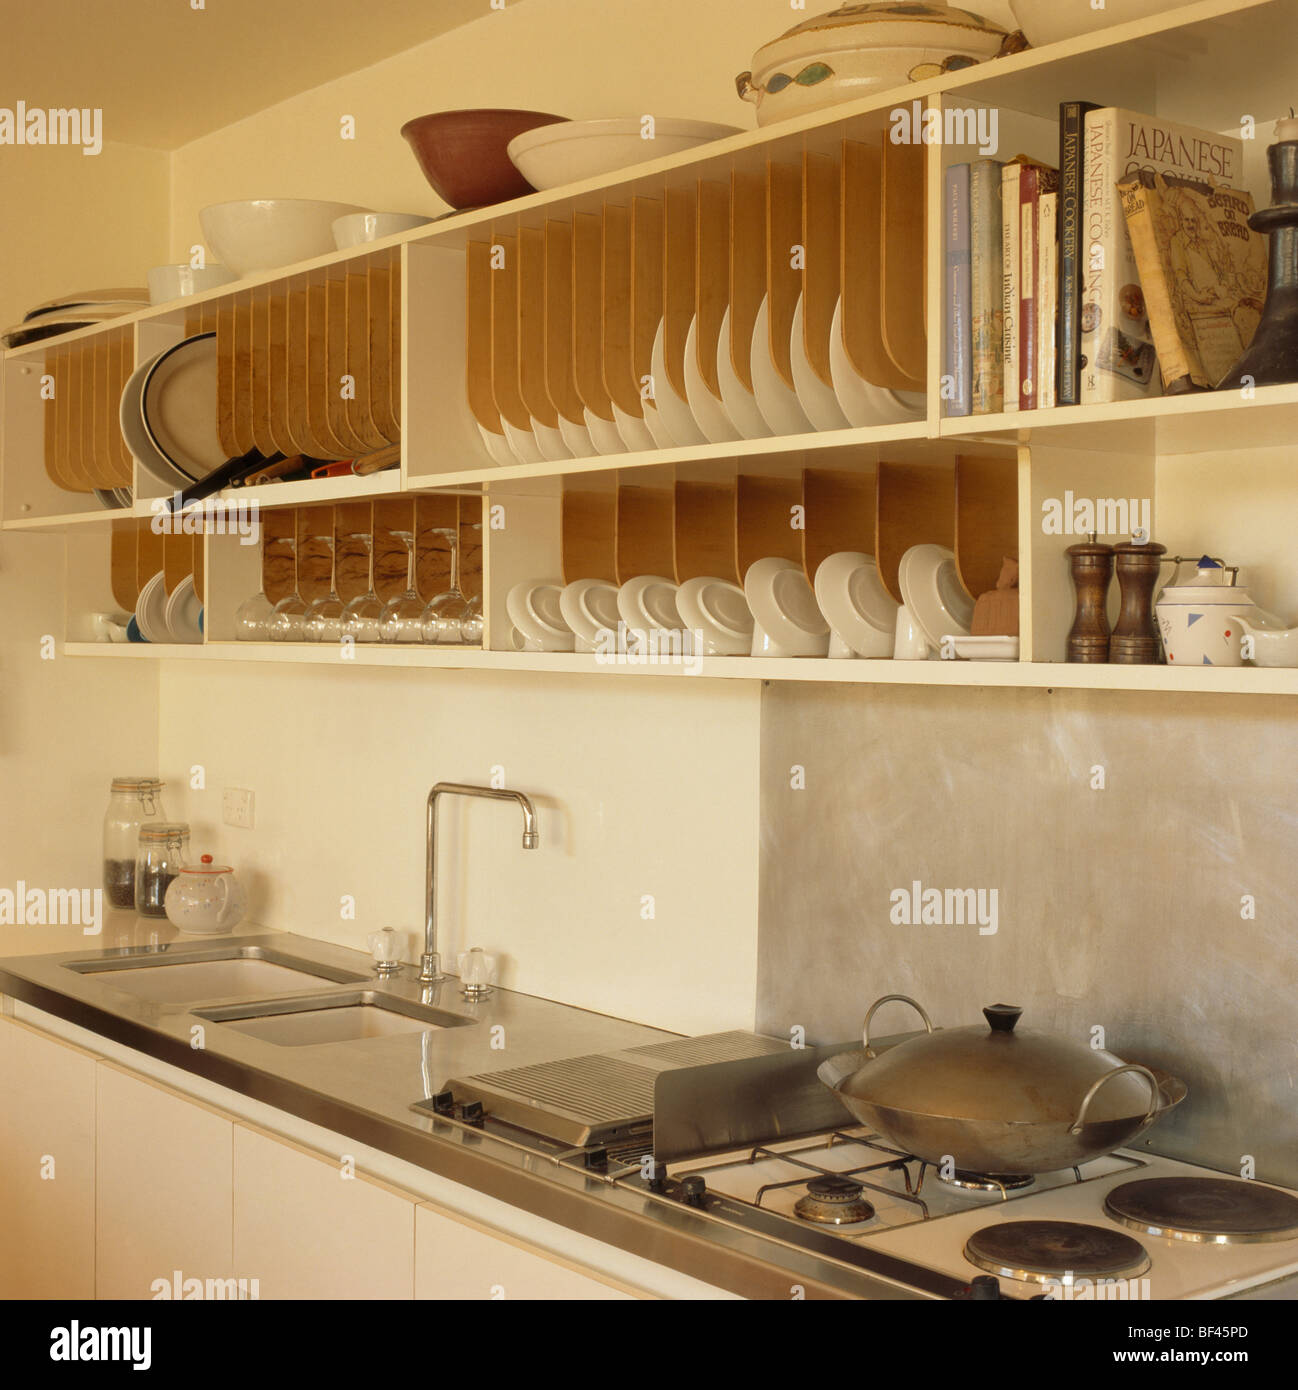 Cream shelving with large fitted plate rack above sink and hob in modern kitchen & Cream shelving with large fitted plate rack above sink and hob in ...